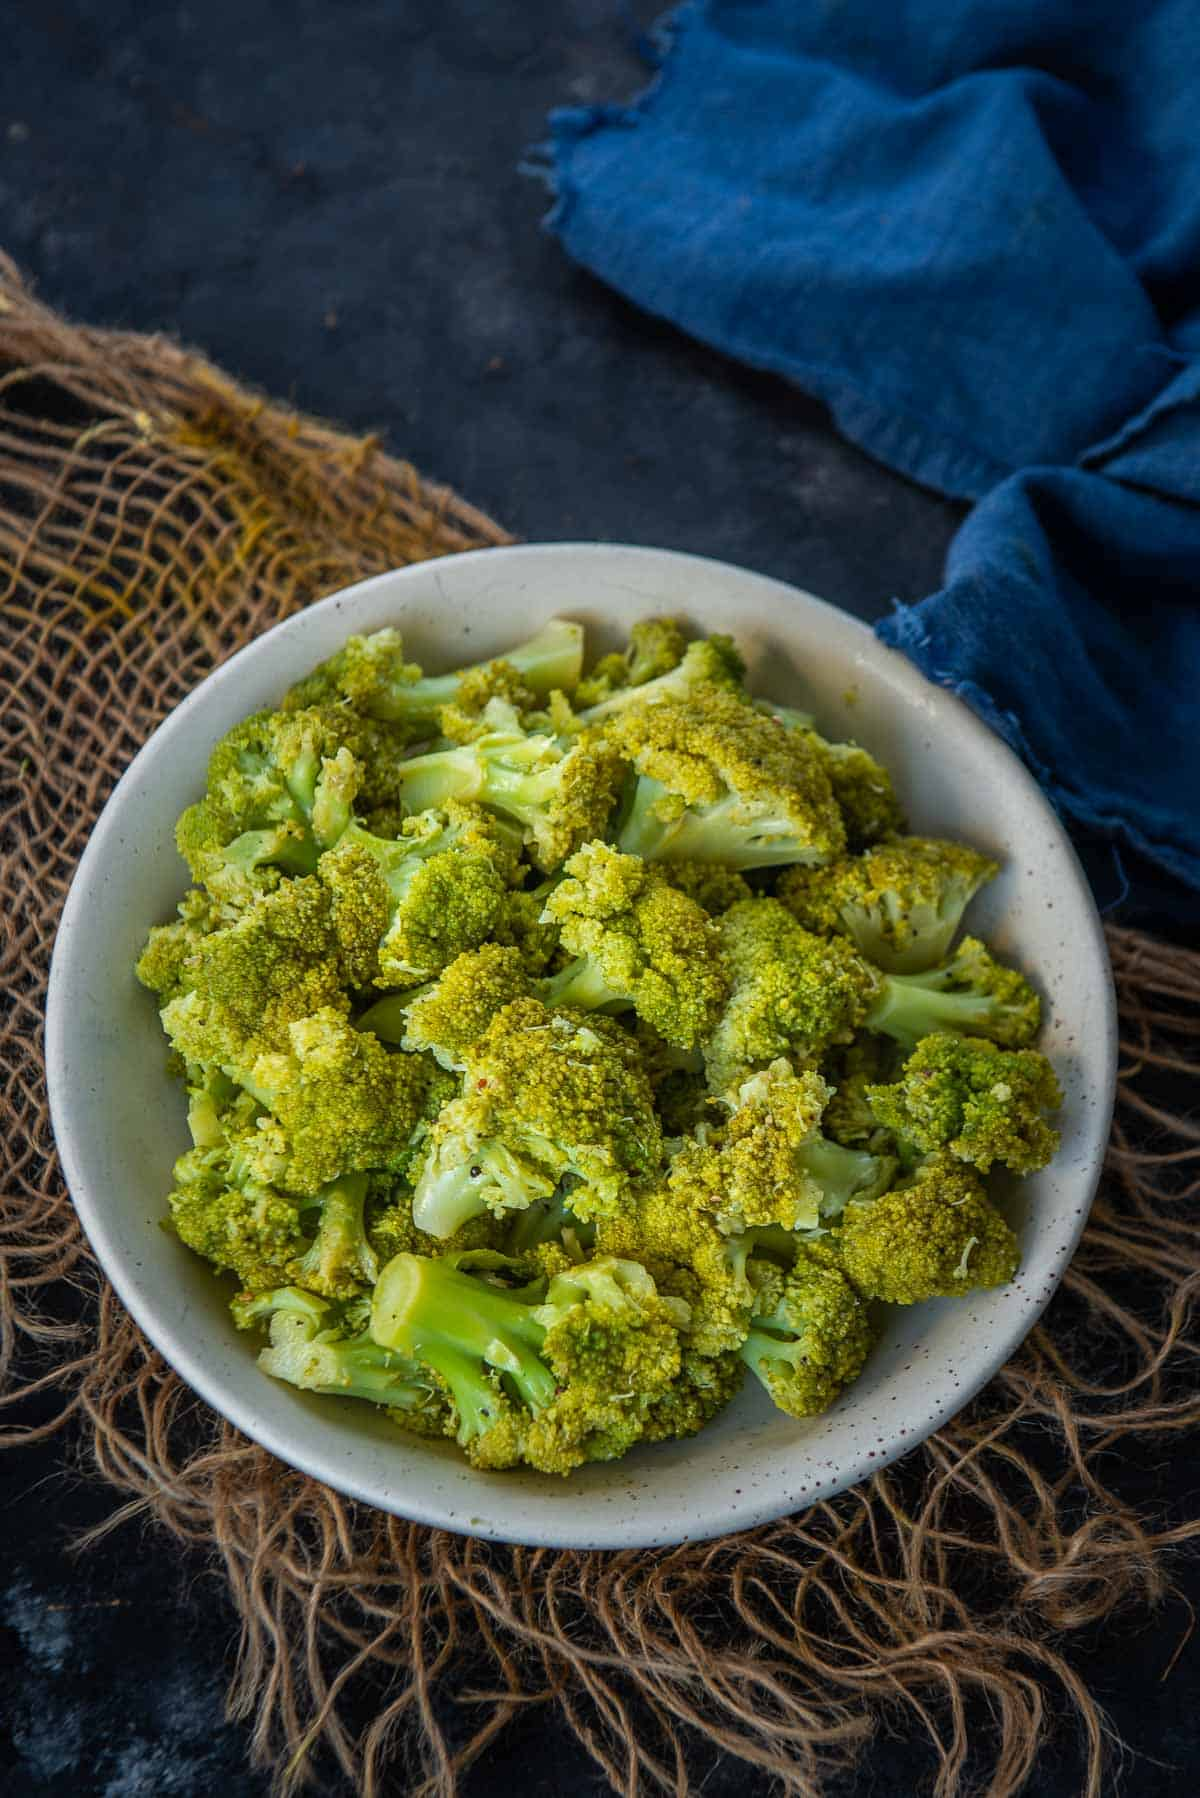 Instant Pot Broccoli served in a bowl.